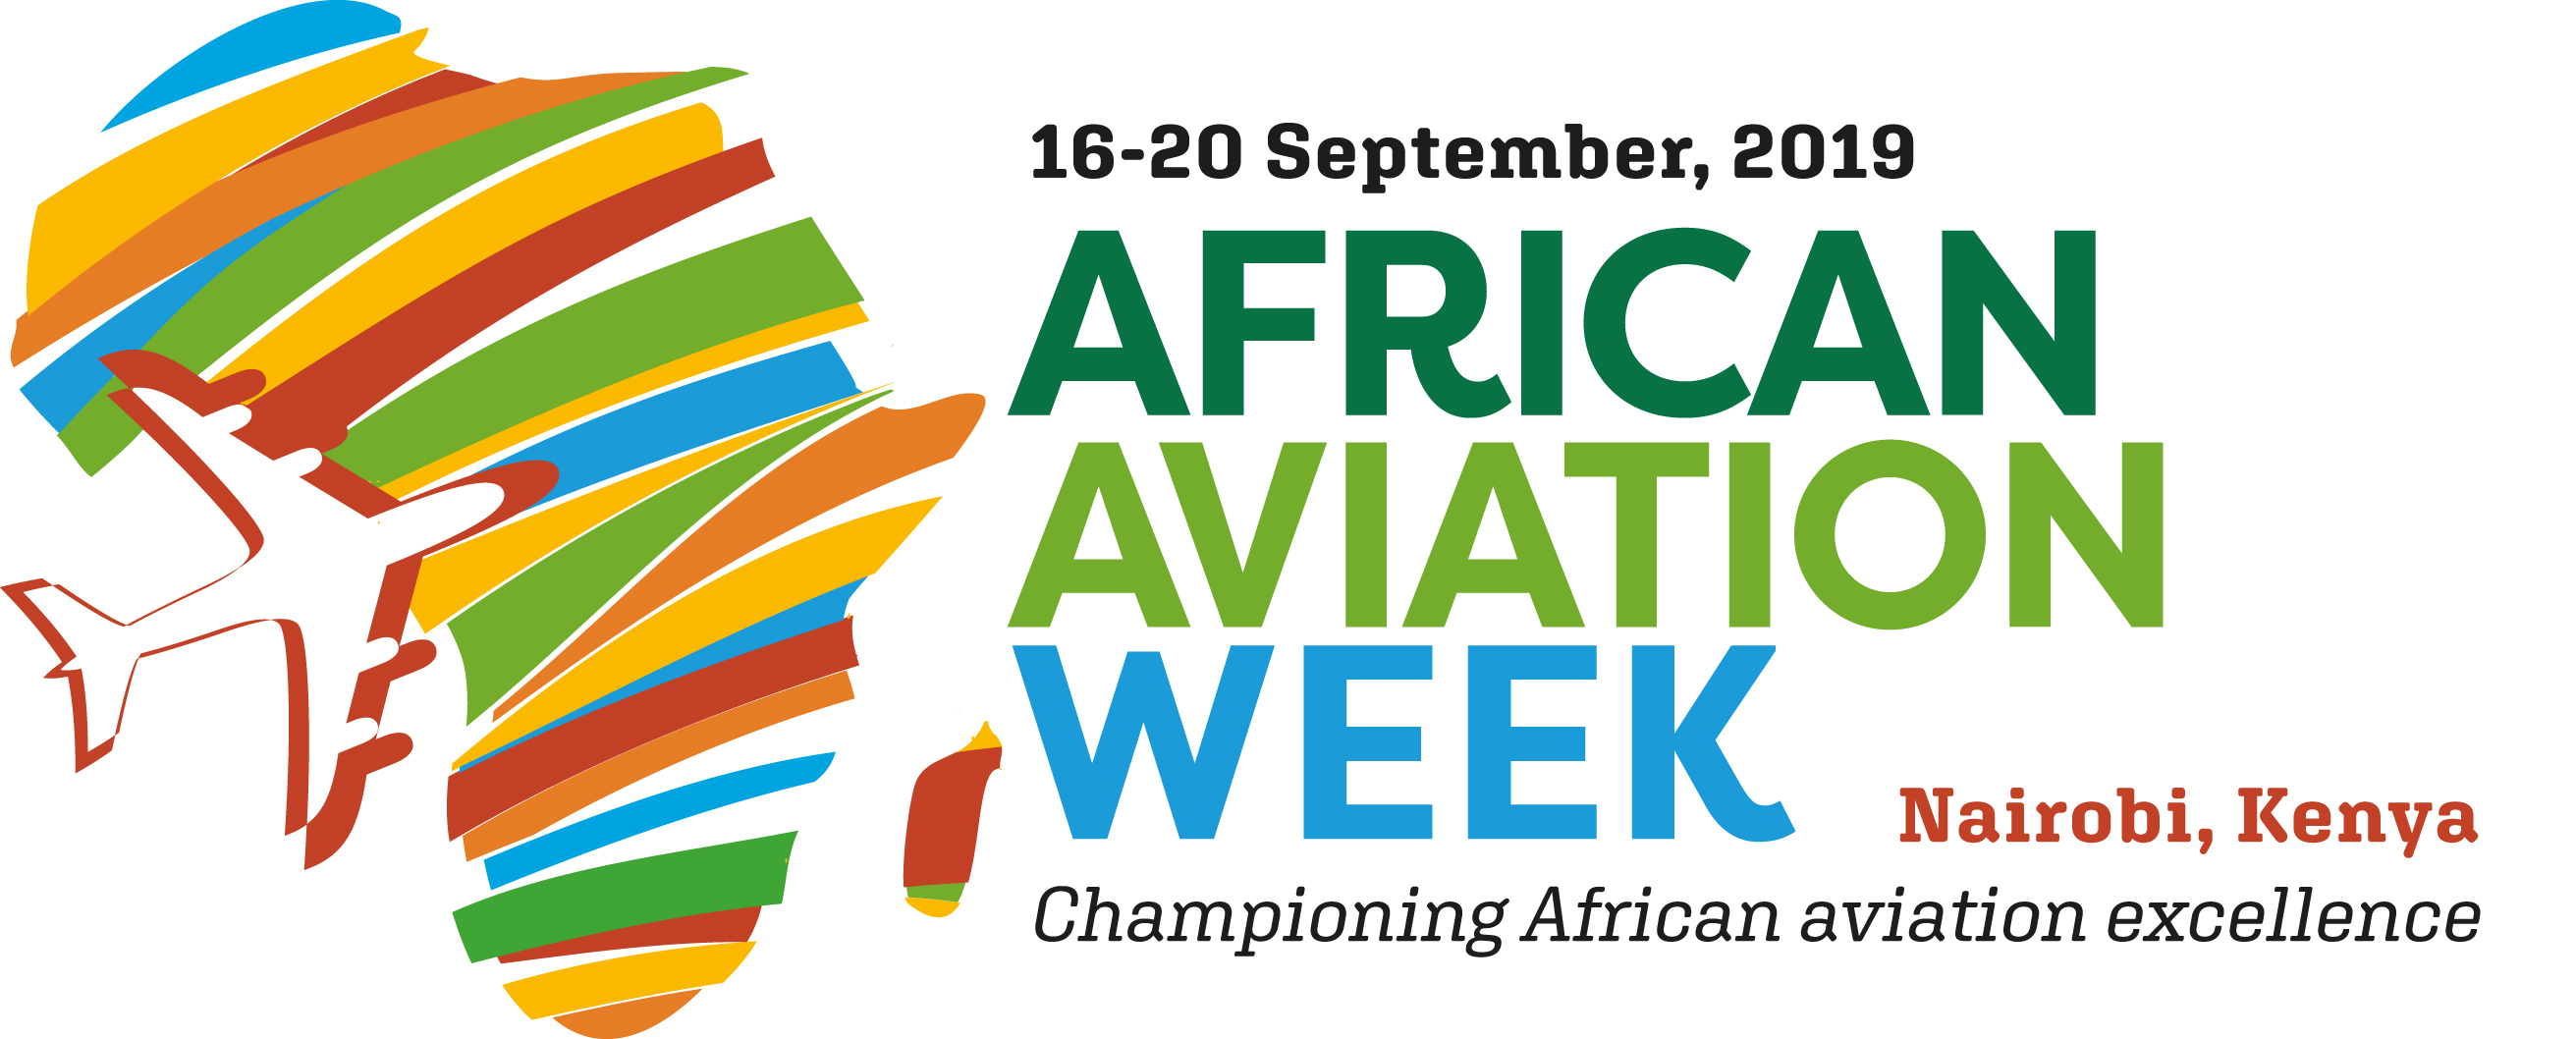 Kenya to host second African Aviation Week championing sector growth